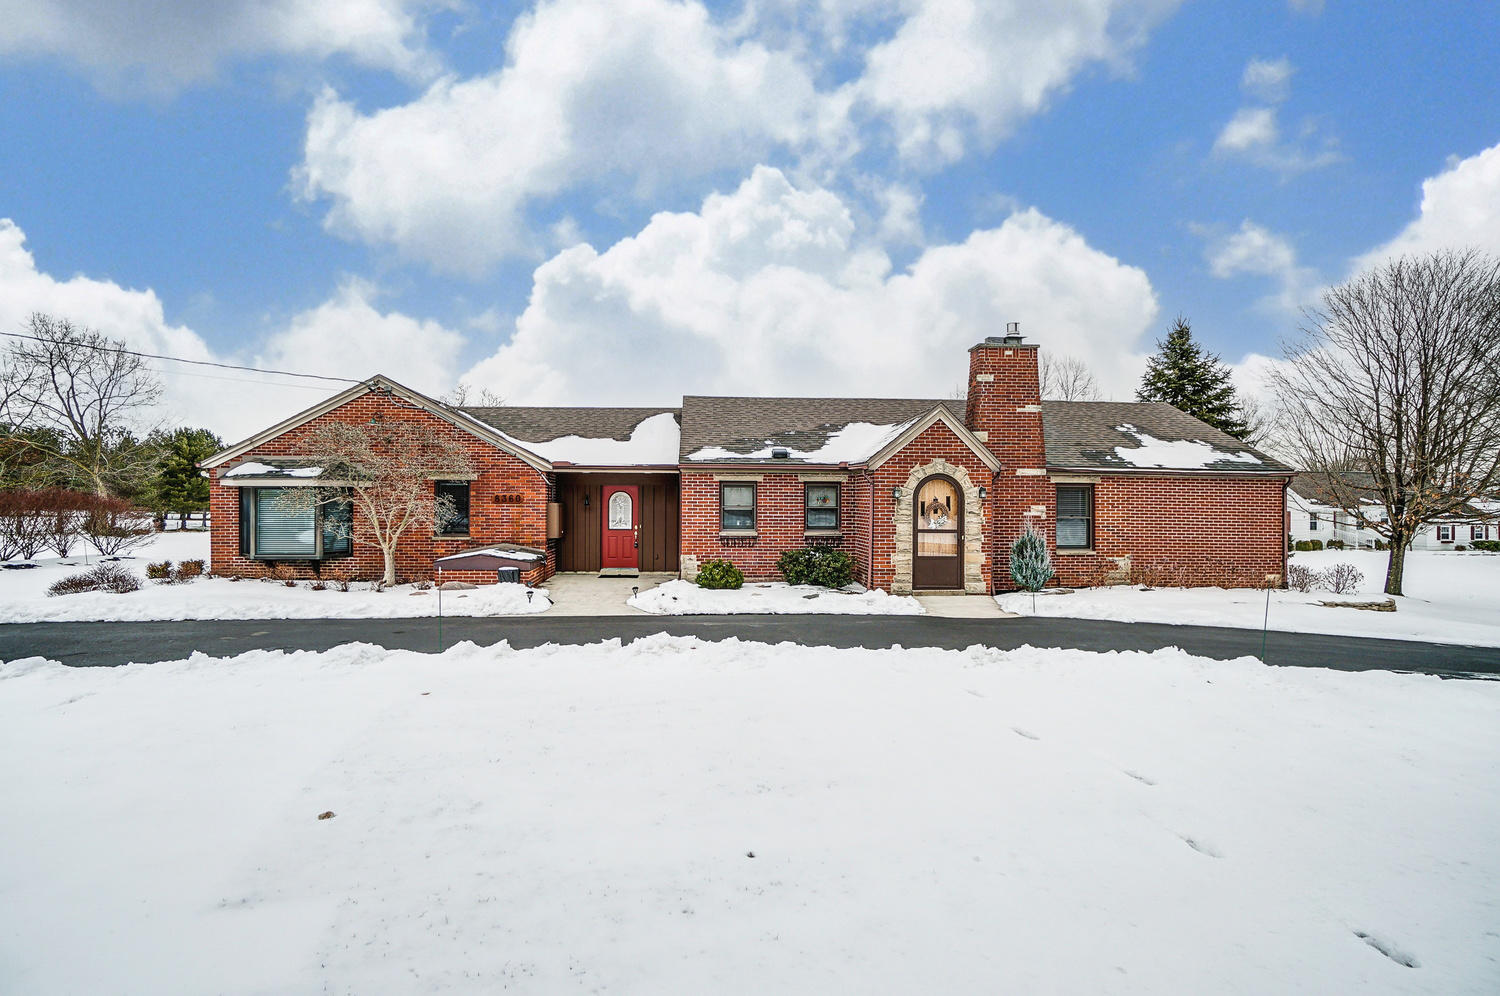 8360 Frederick Property Photo - Dayton, OH real estate listing